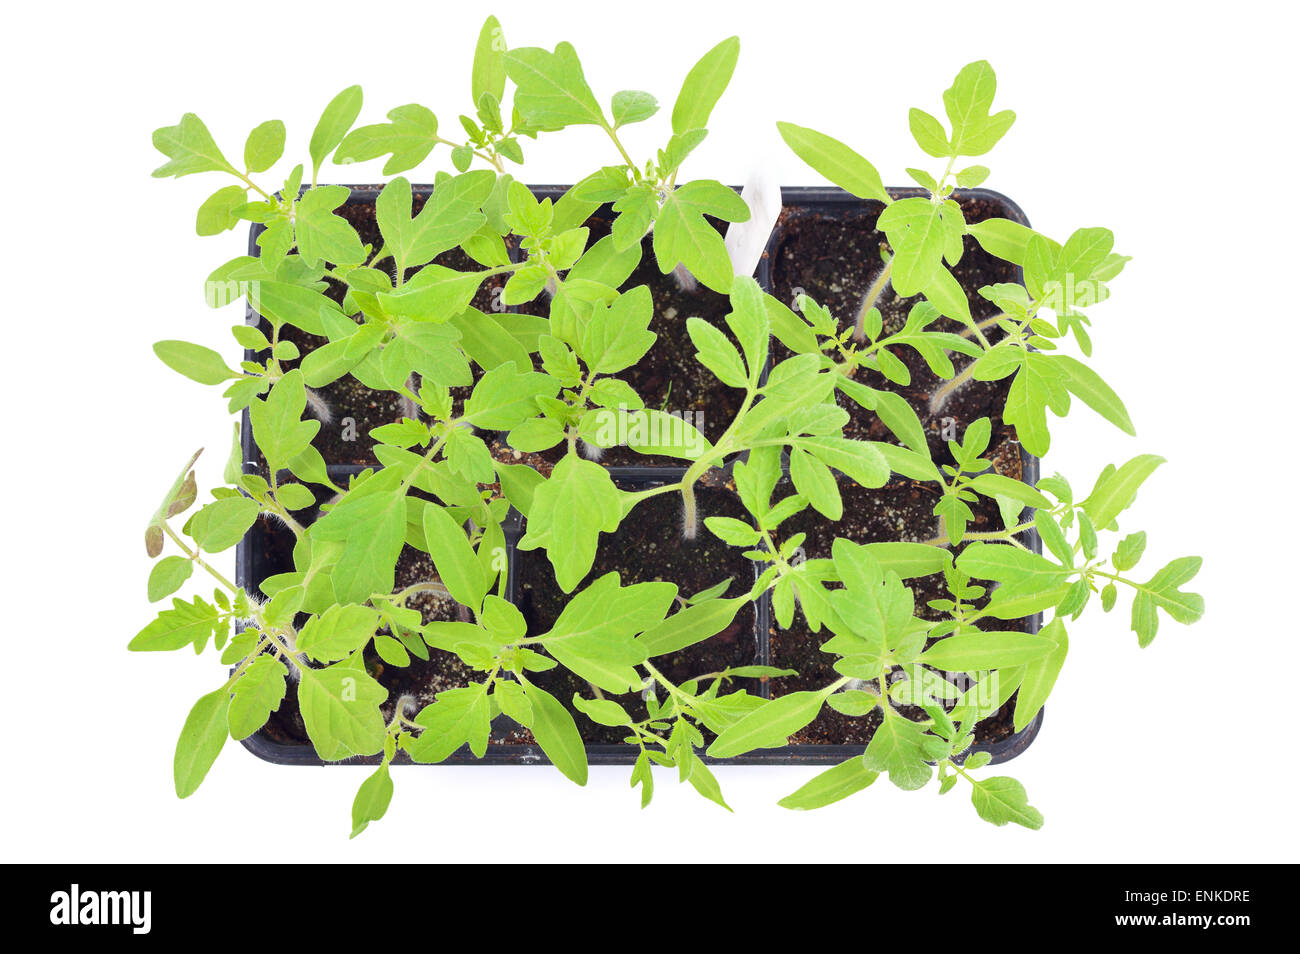 Tomato Seedlings In A Pot Isolated On White Background Young Plants Plastic Cells